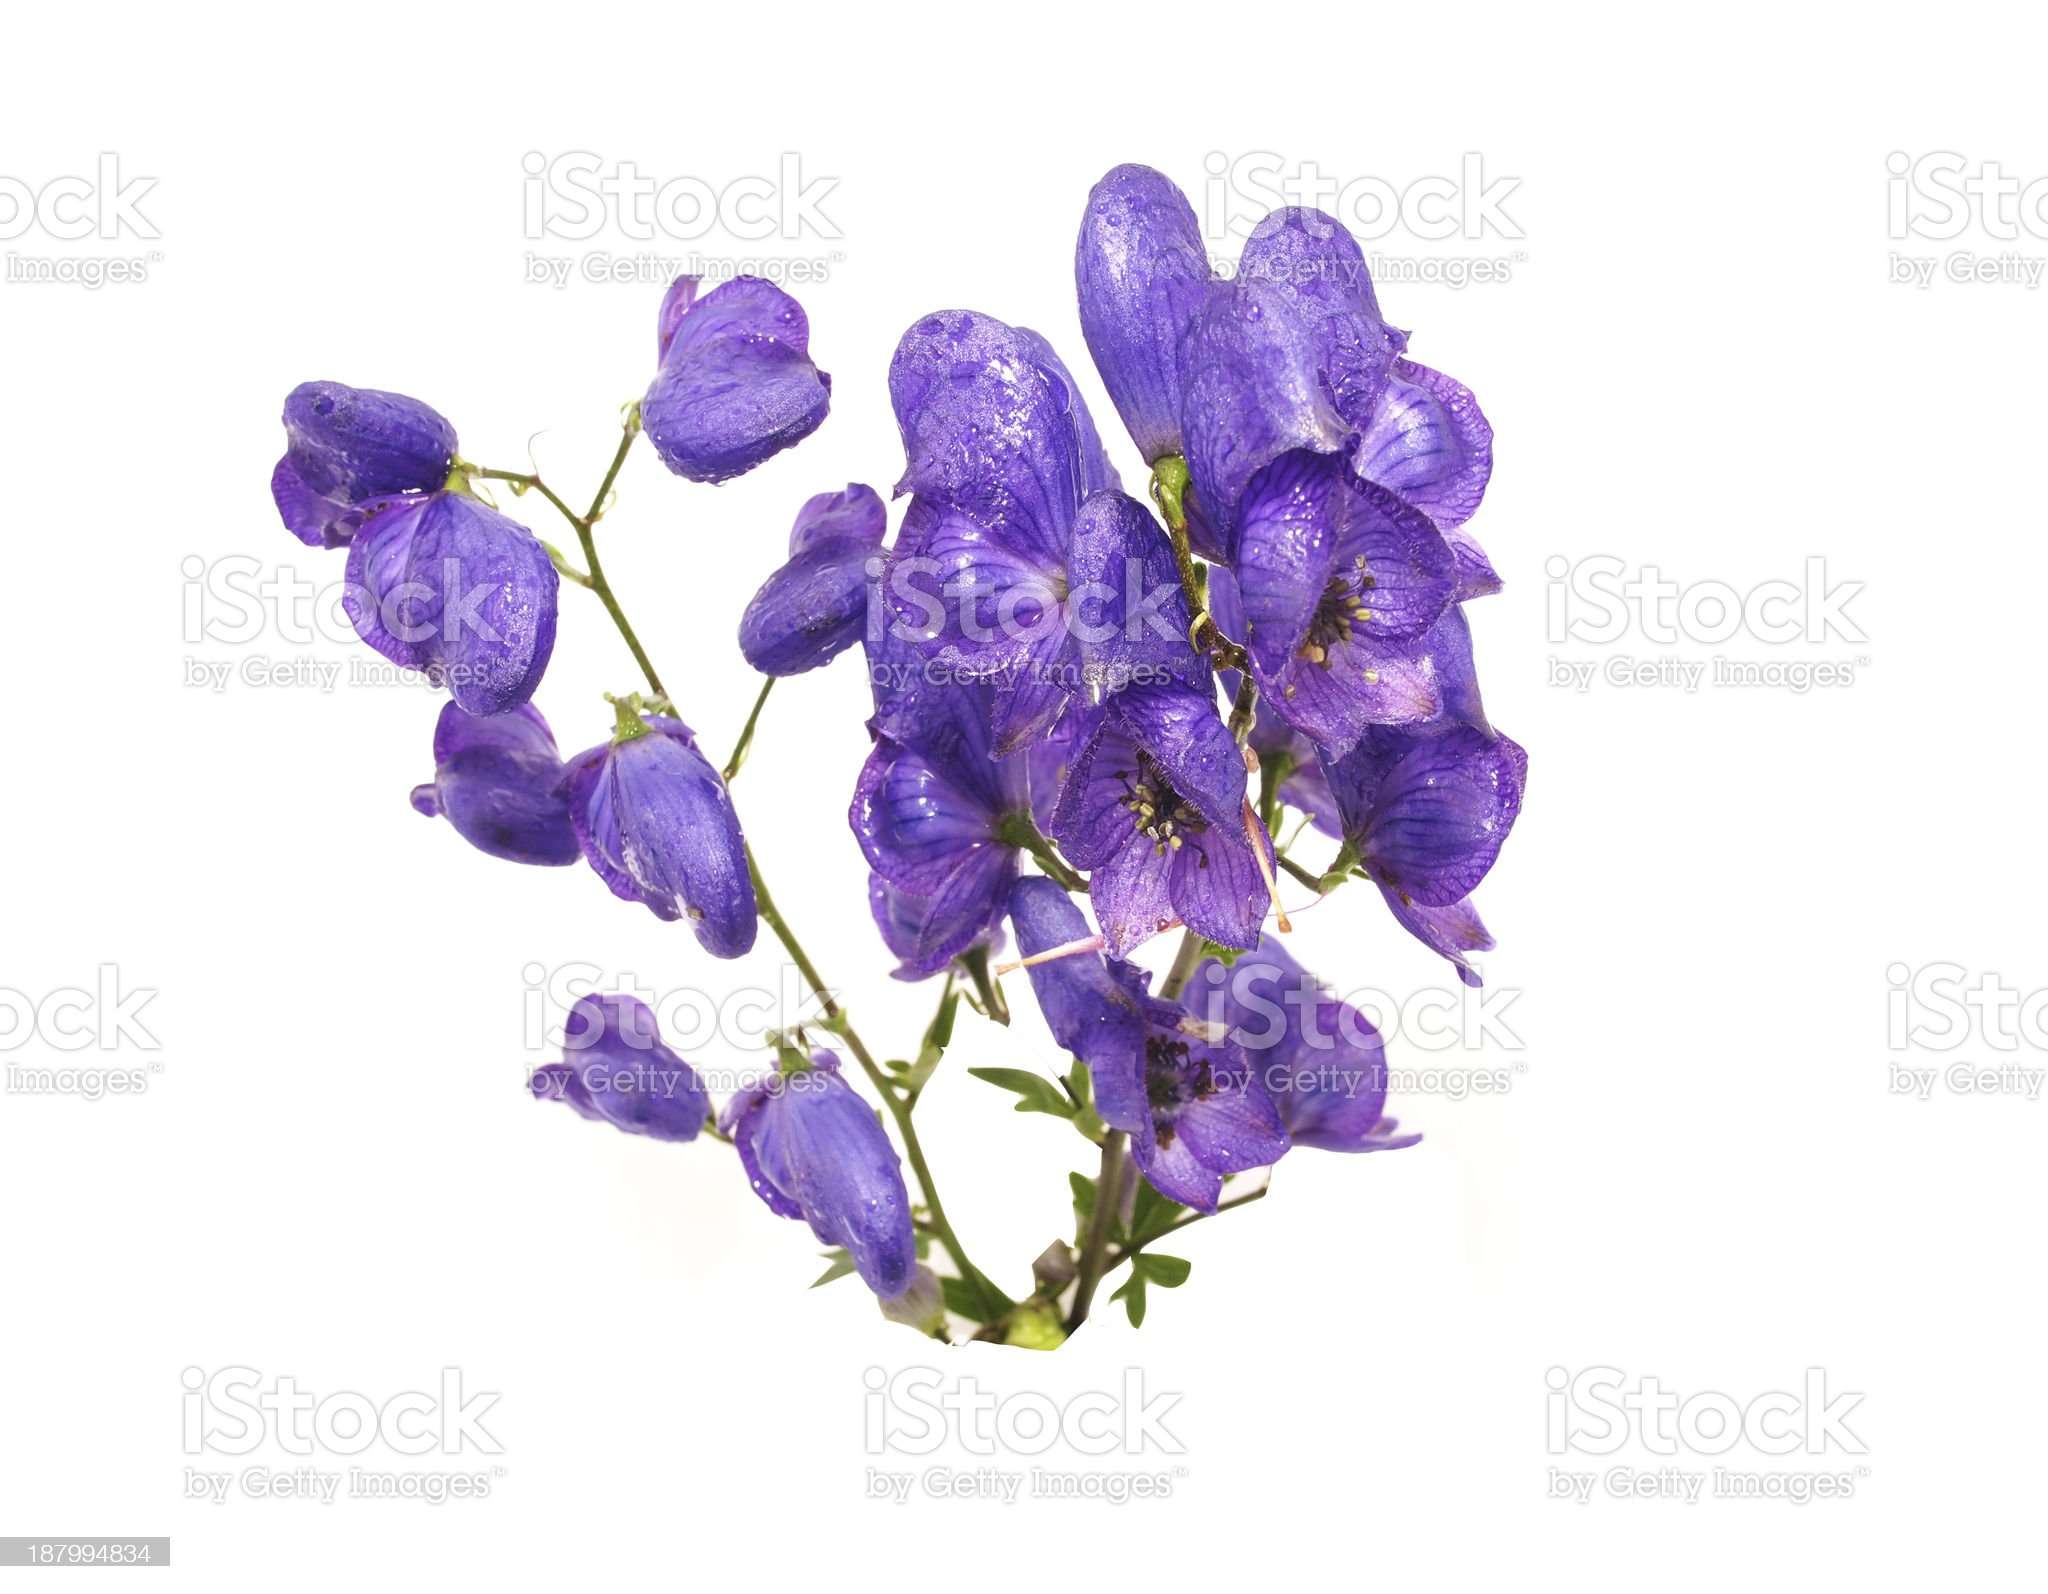 Aconitum napellus on a white background royalty-free stock photo